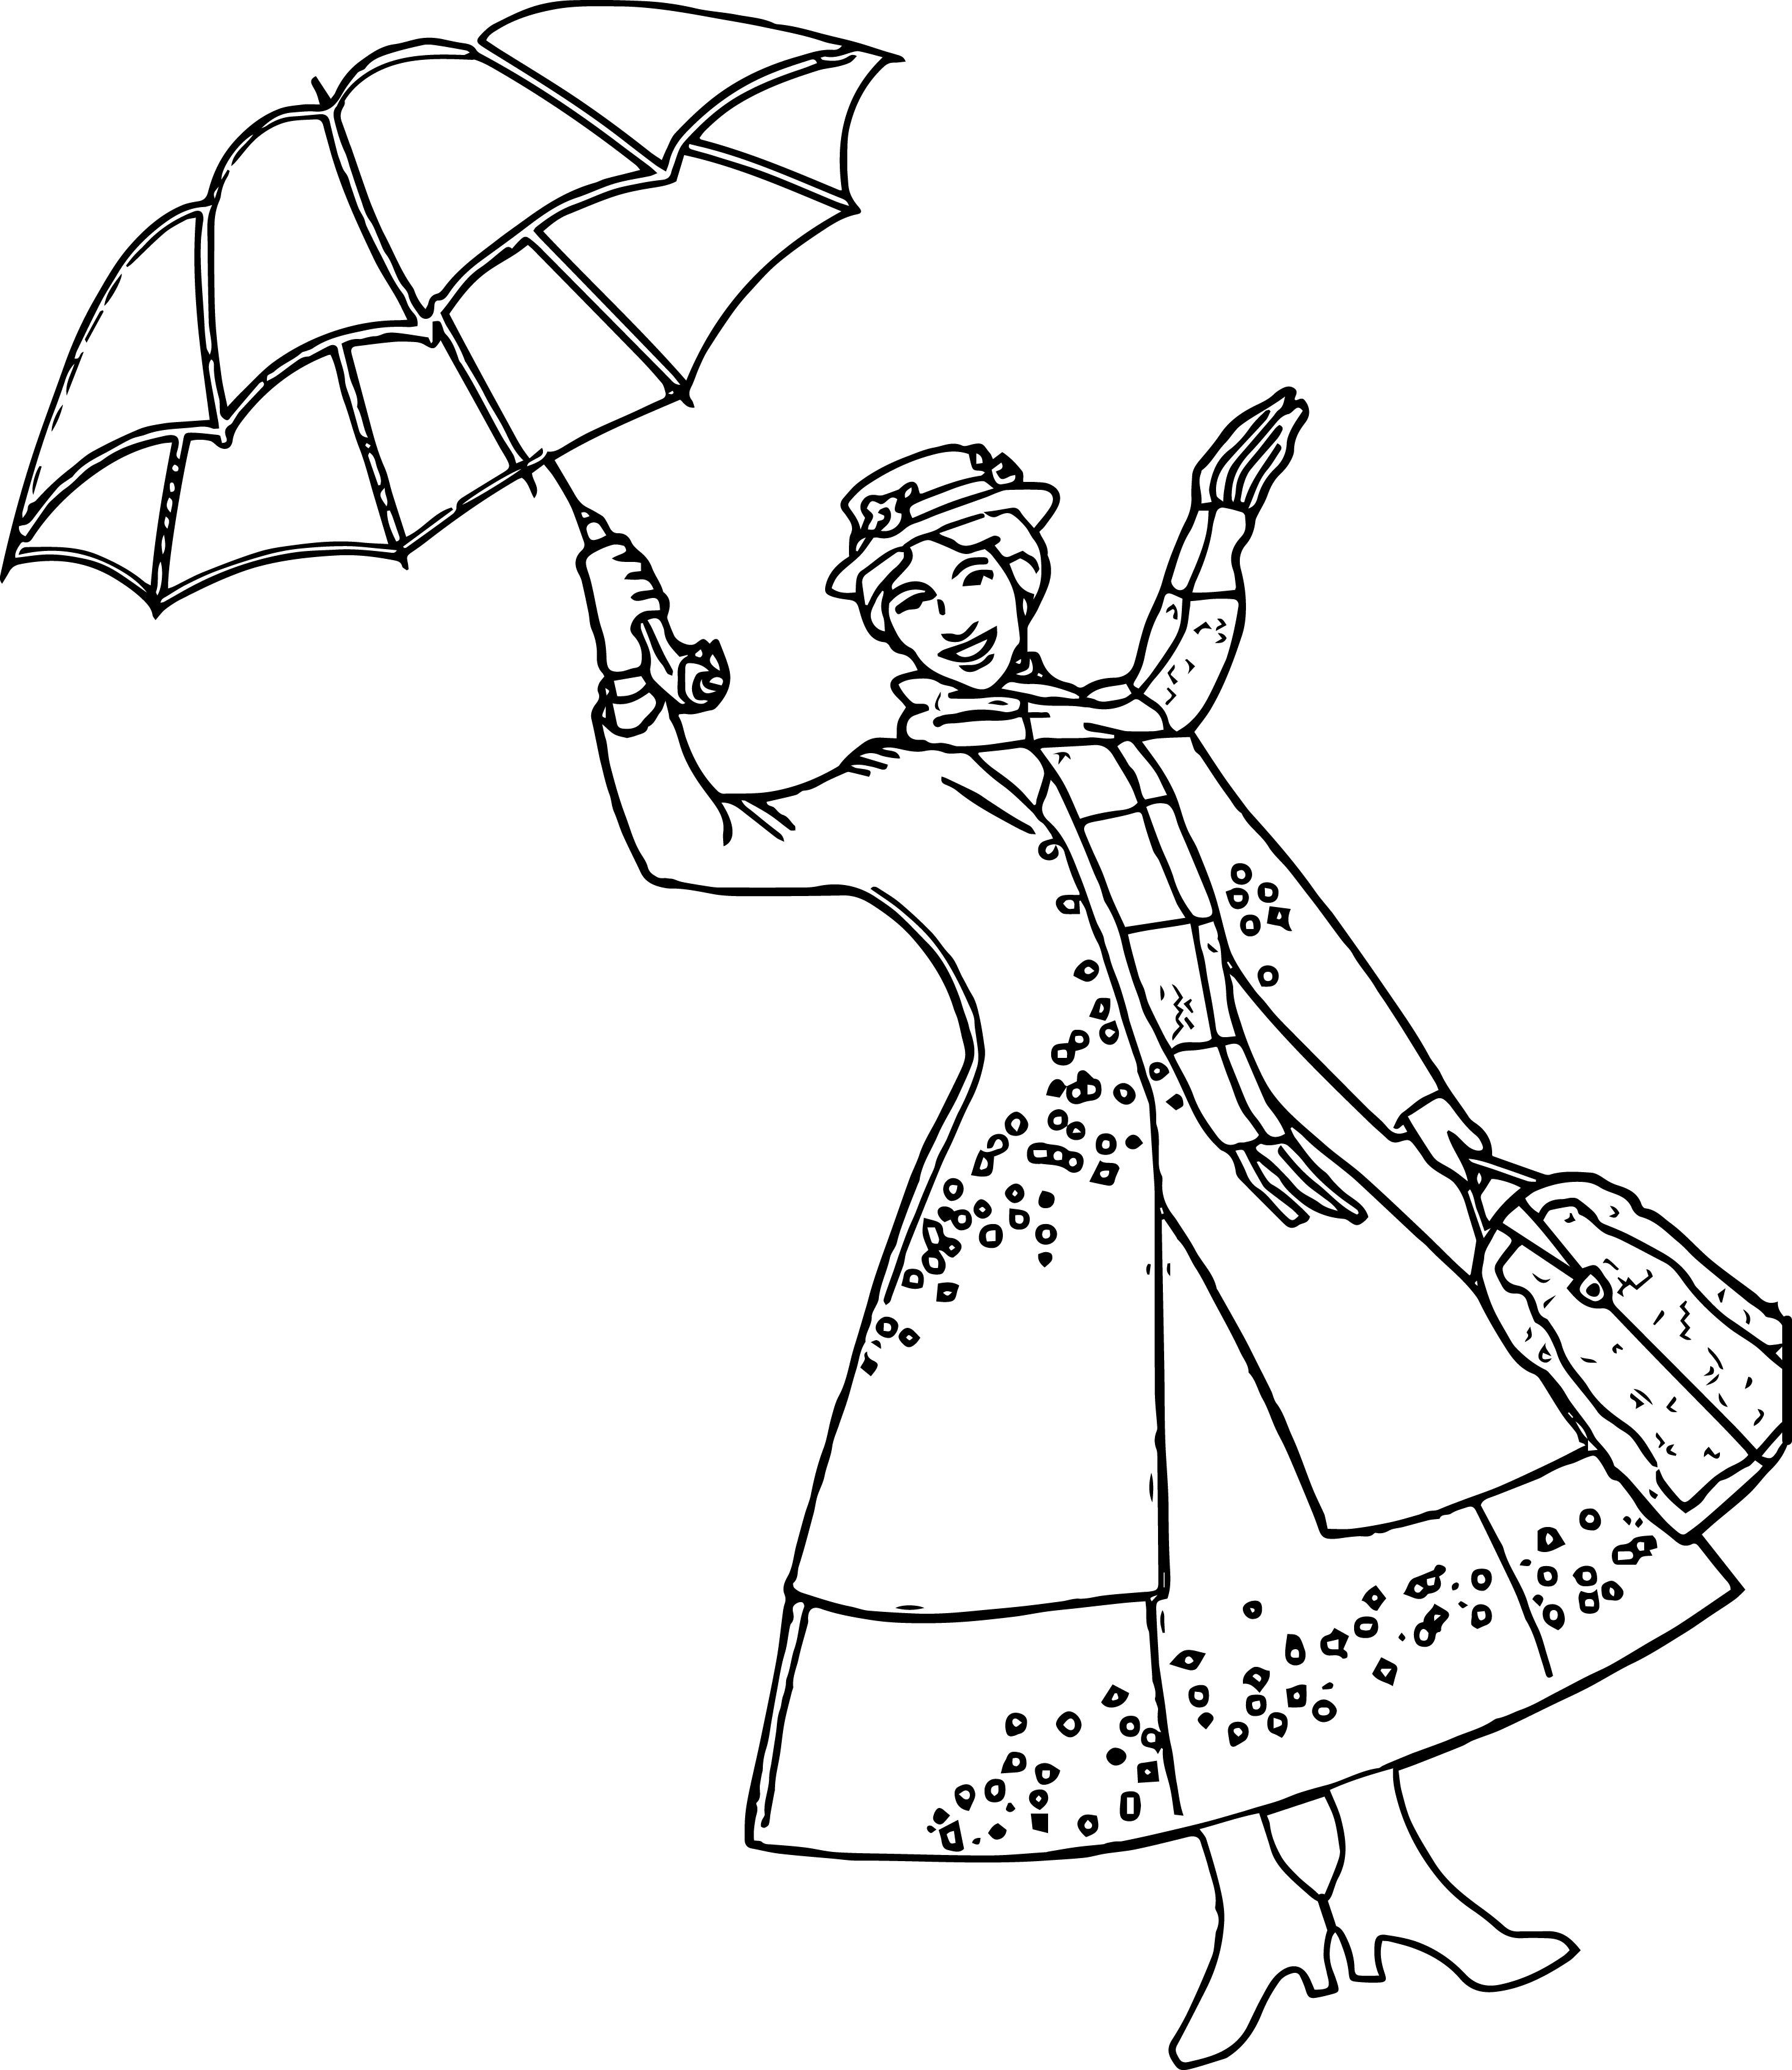 Mary Poppins Coloring Pages  Mary Poppins Girl Umbrella Coloring Page